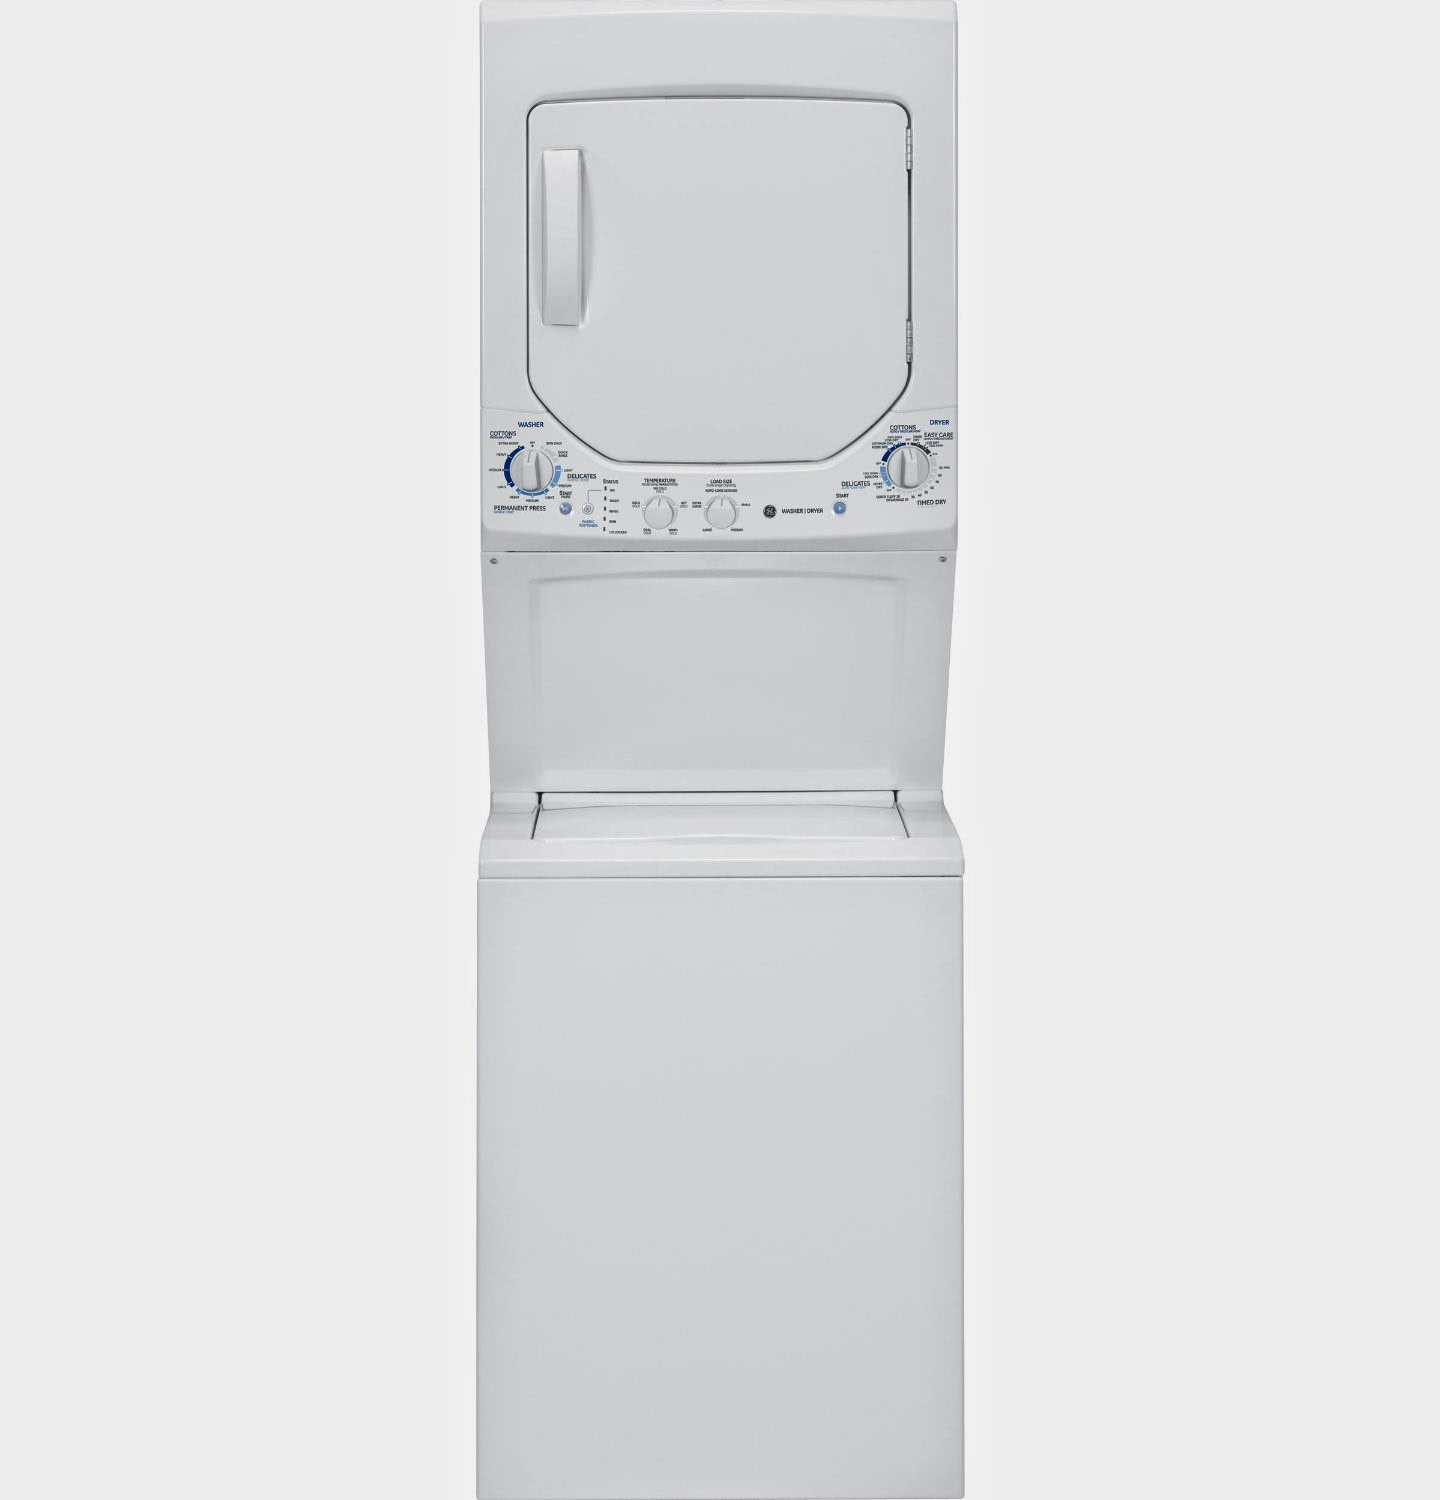 GE Spacemaker 4.4 CF White Clothes Washers